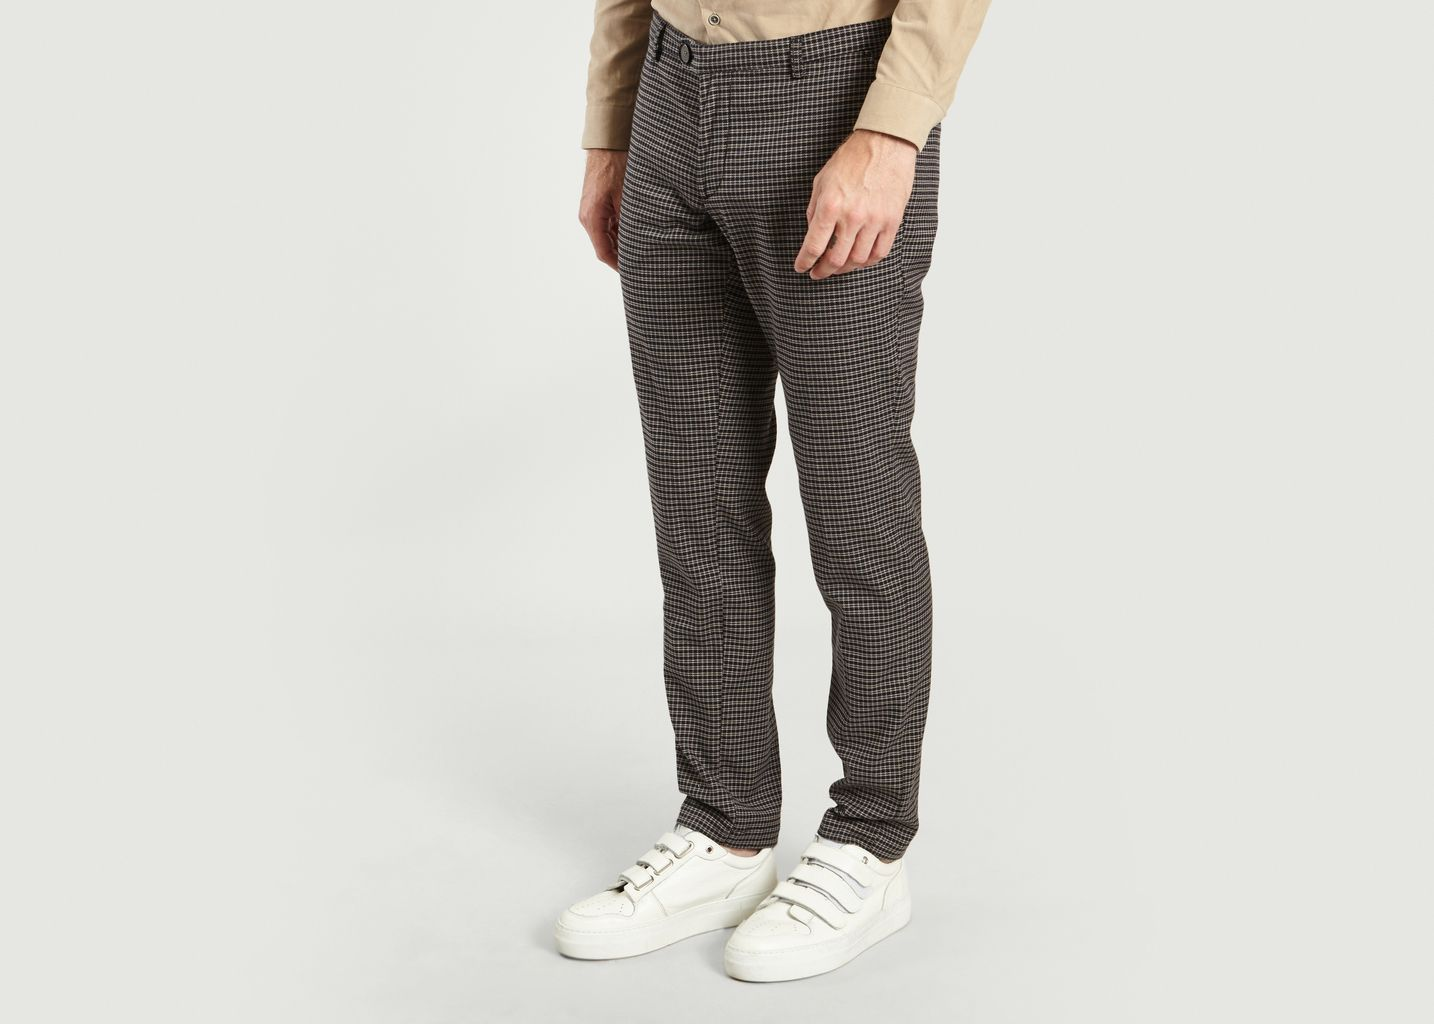 Pantalon Carreaux City 2 - JagVi